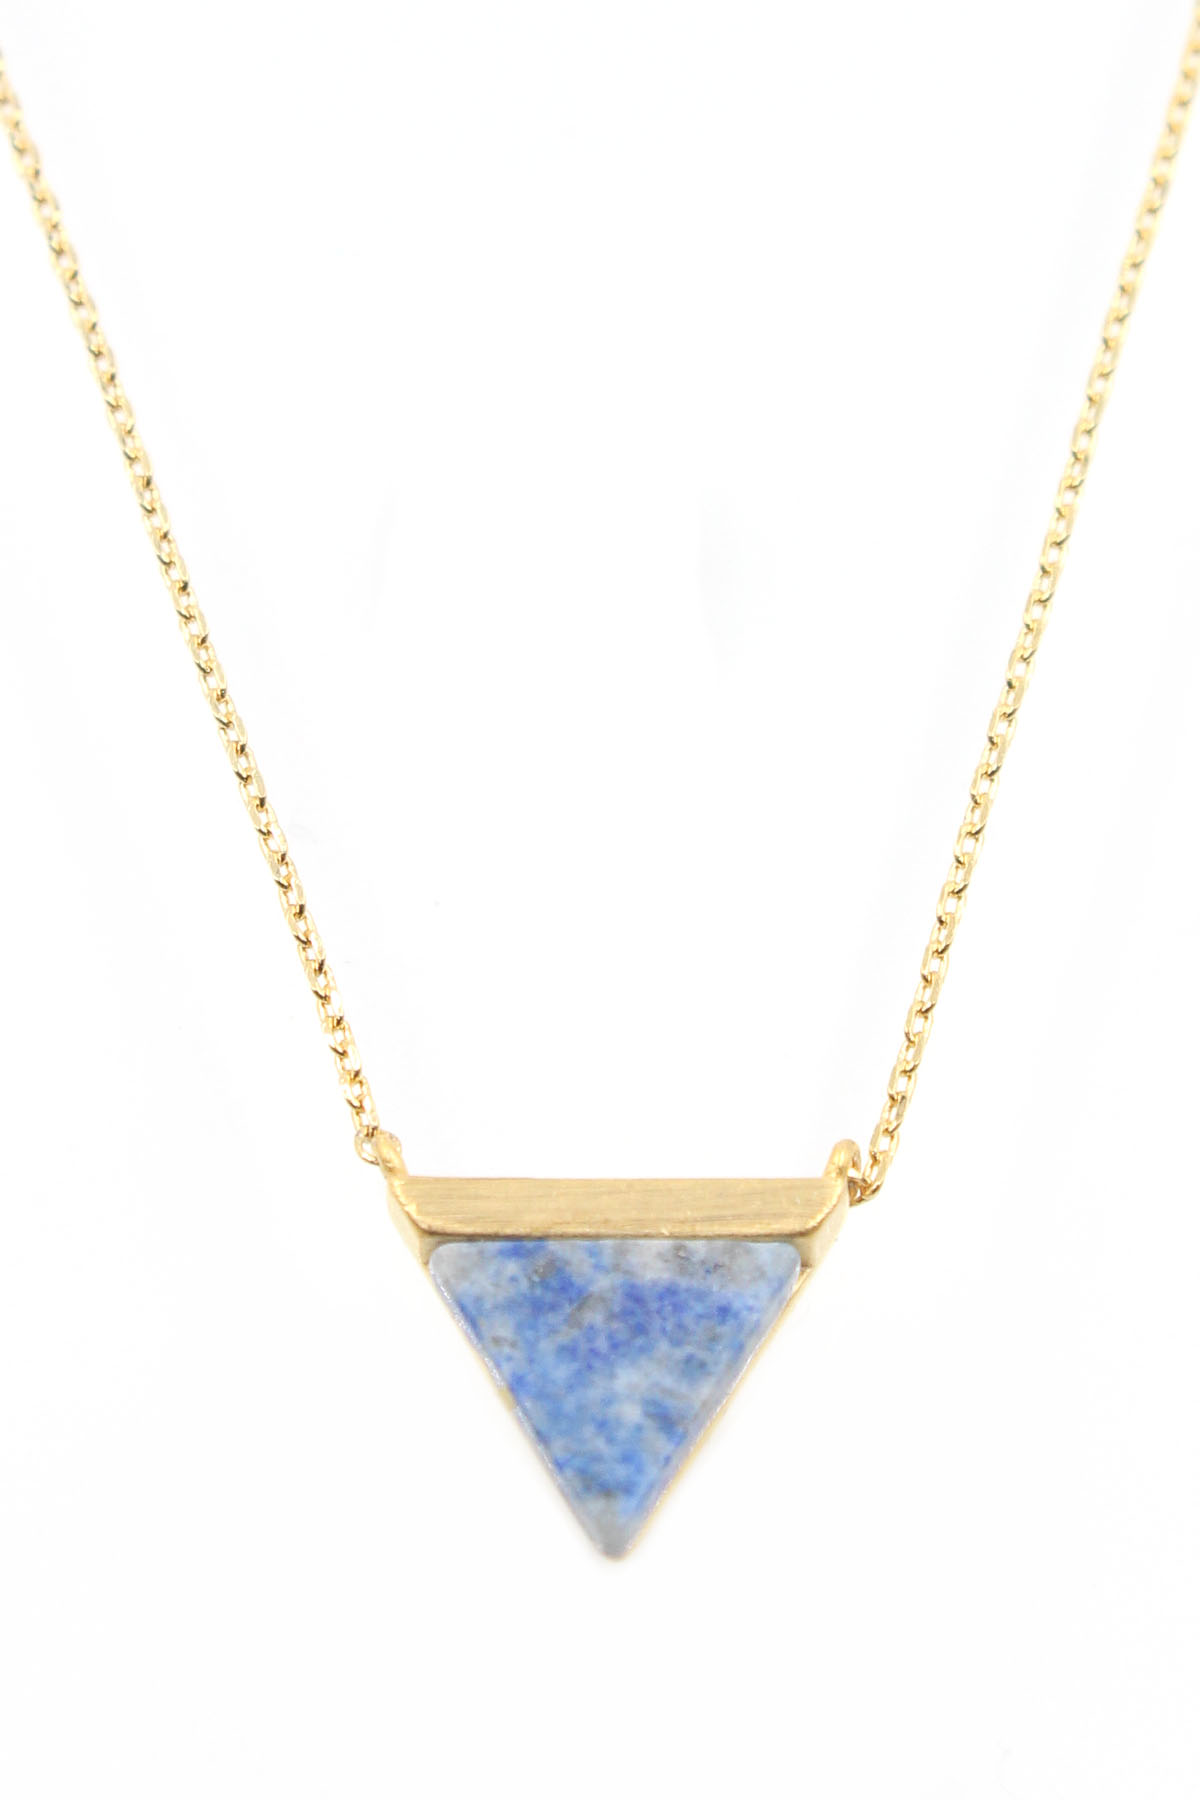 Marble Stone Jewelry : Marble stone triangle pendant necklace necklaces